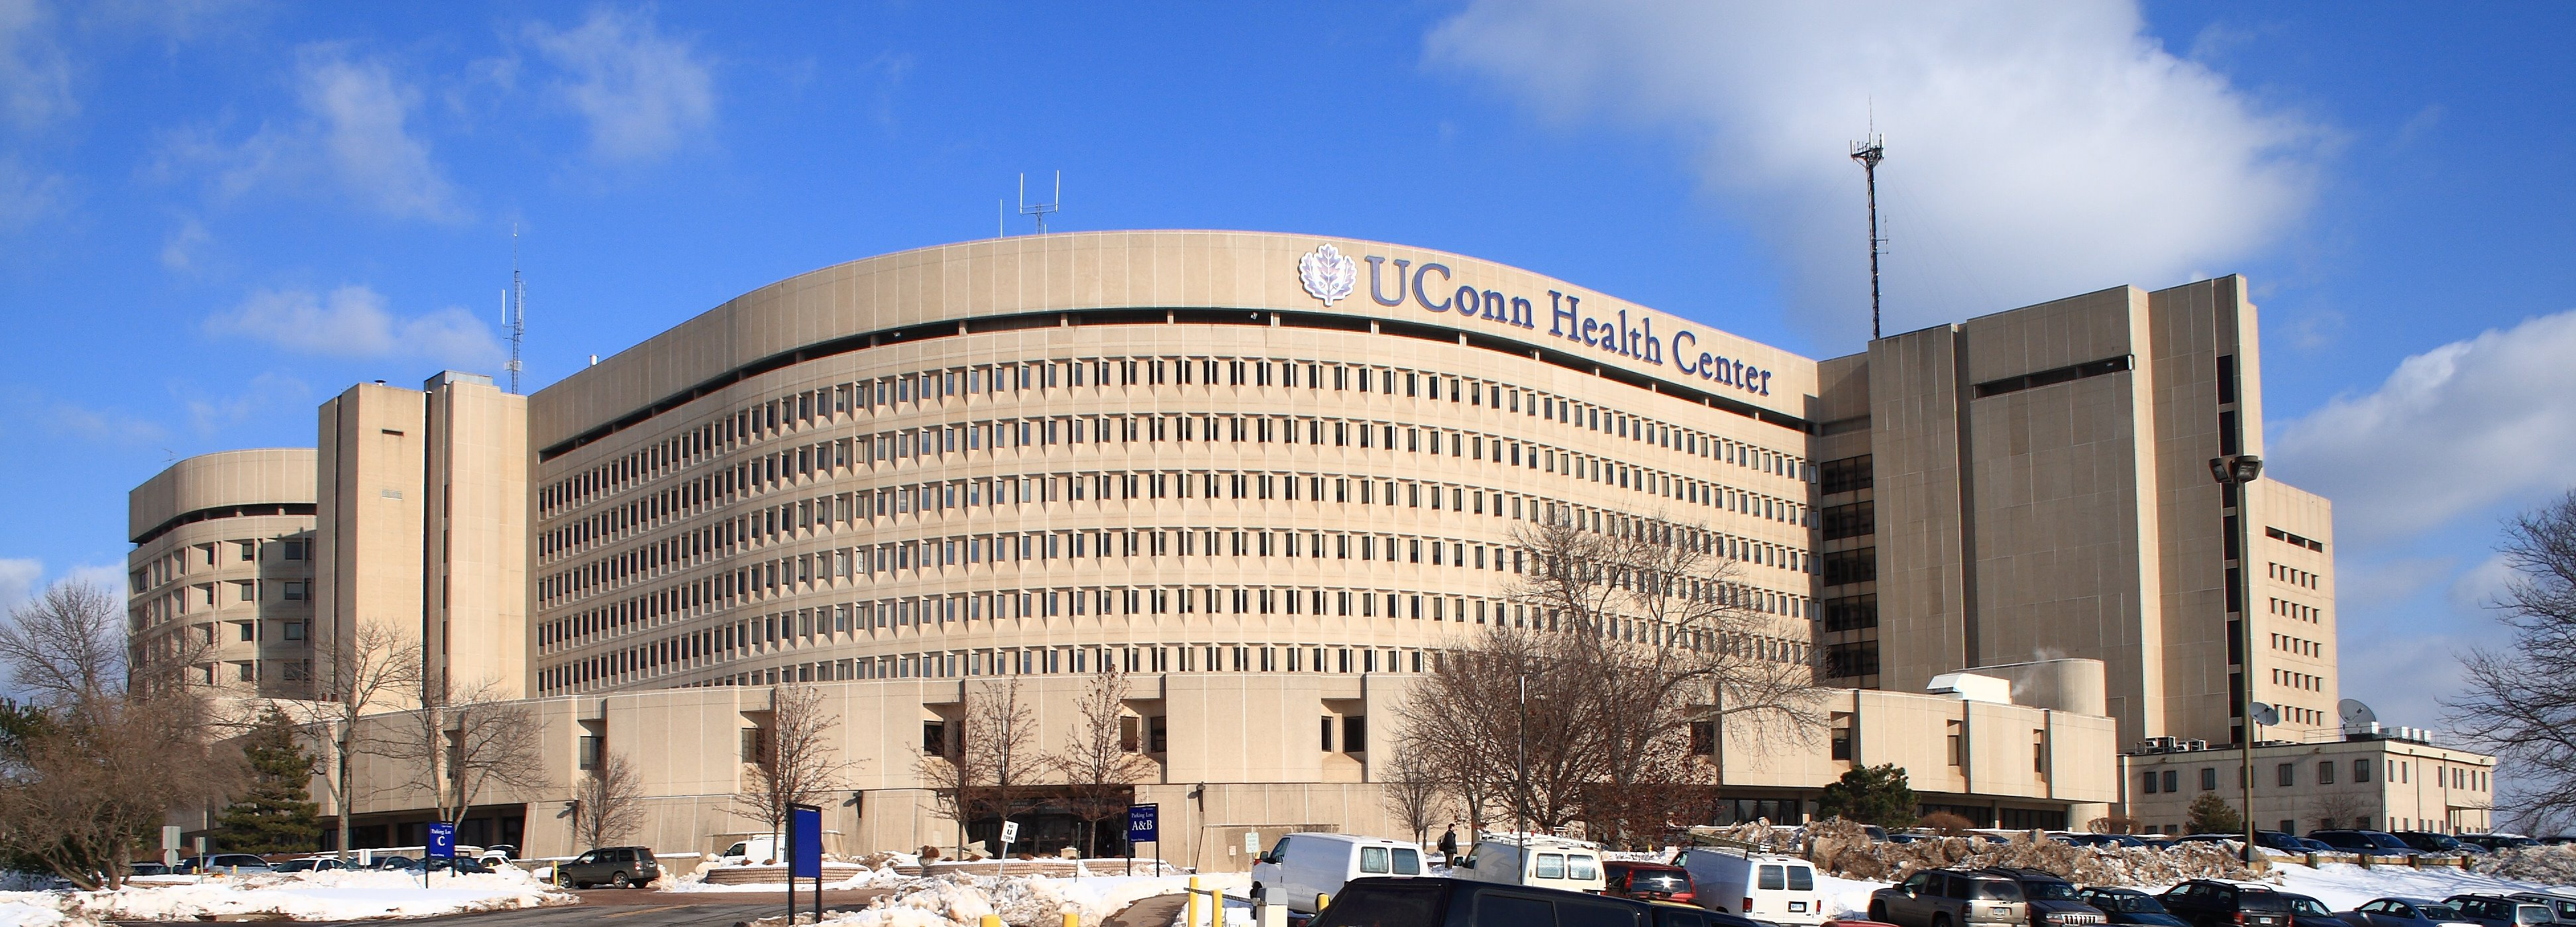 "Fasano blasts UConn Health Center for ""blatant misuse of taxpayer dollars"""